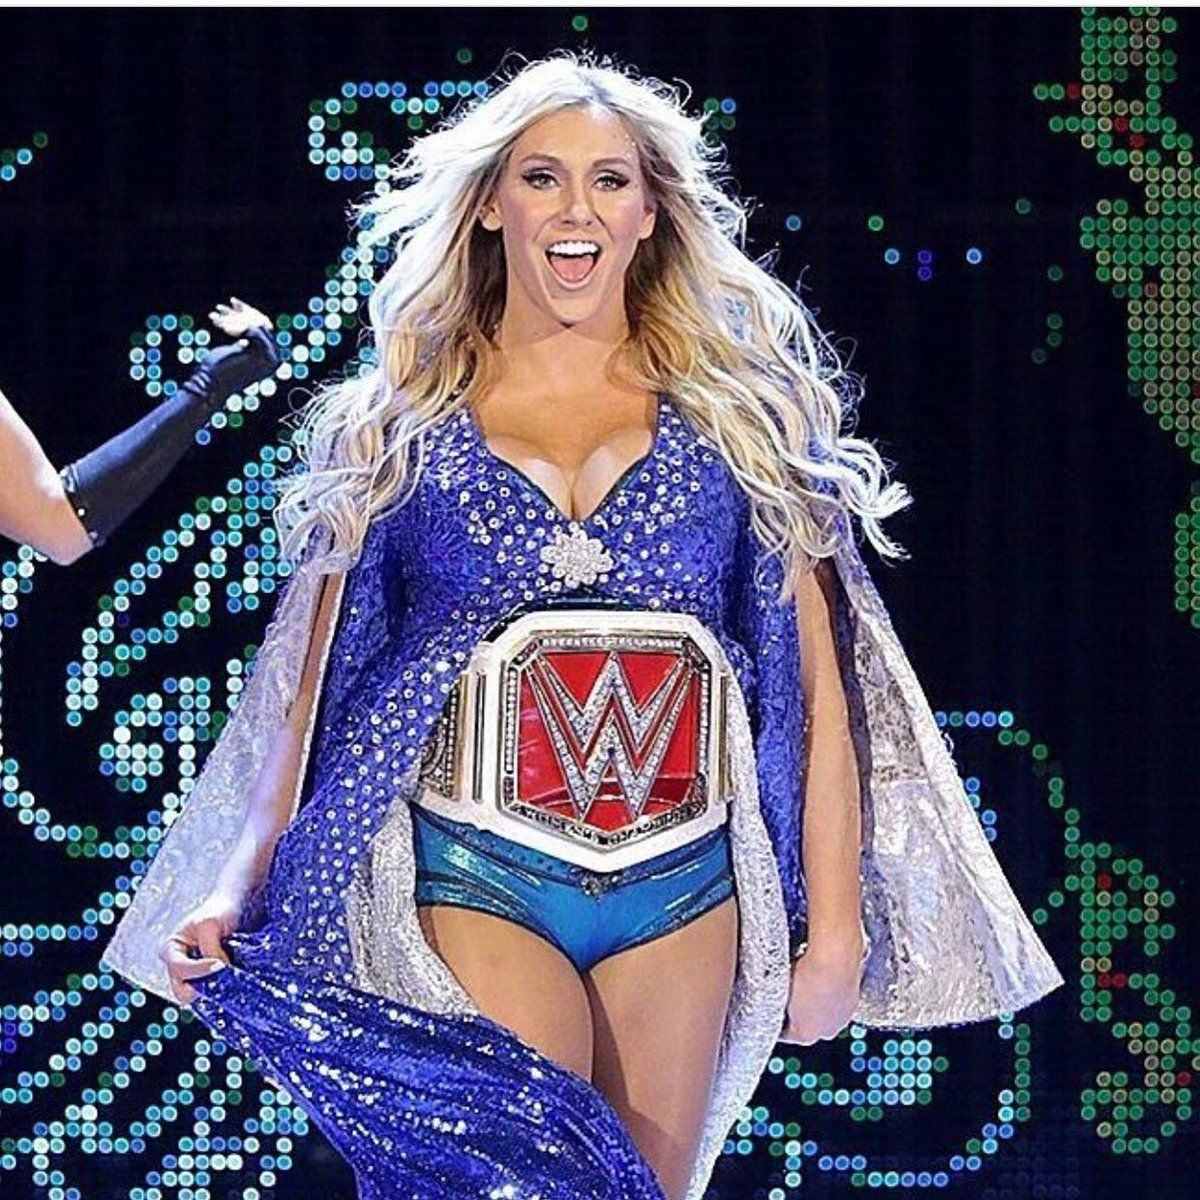 Charlotte Flair on | Charlotte Flair | Pinterest | Lucha libre y Chicas